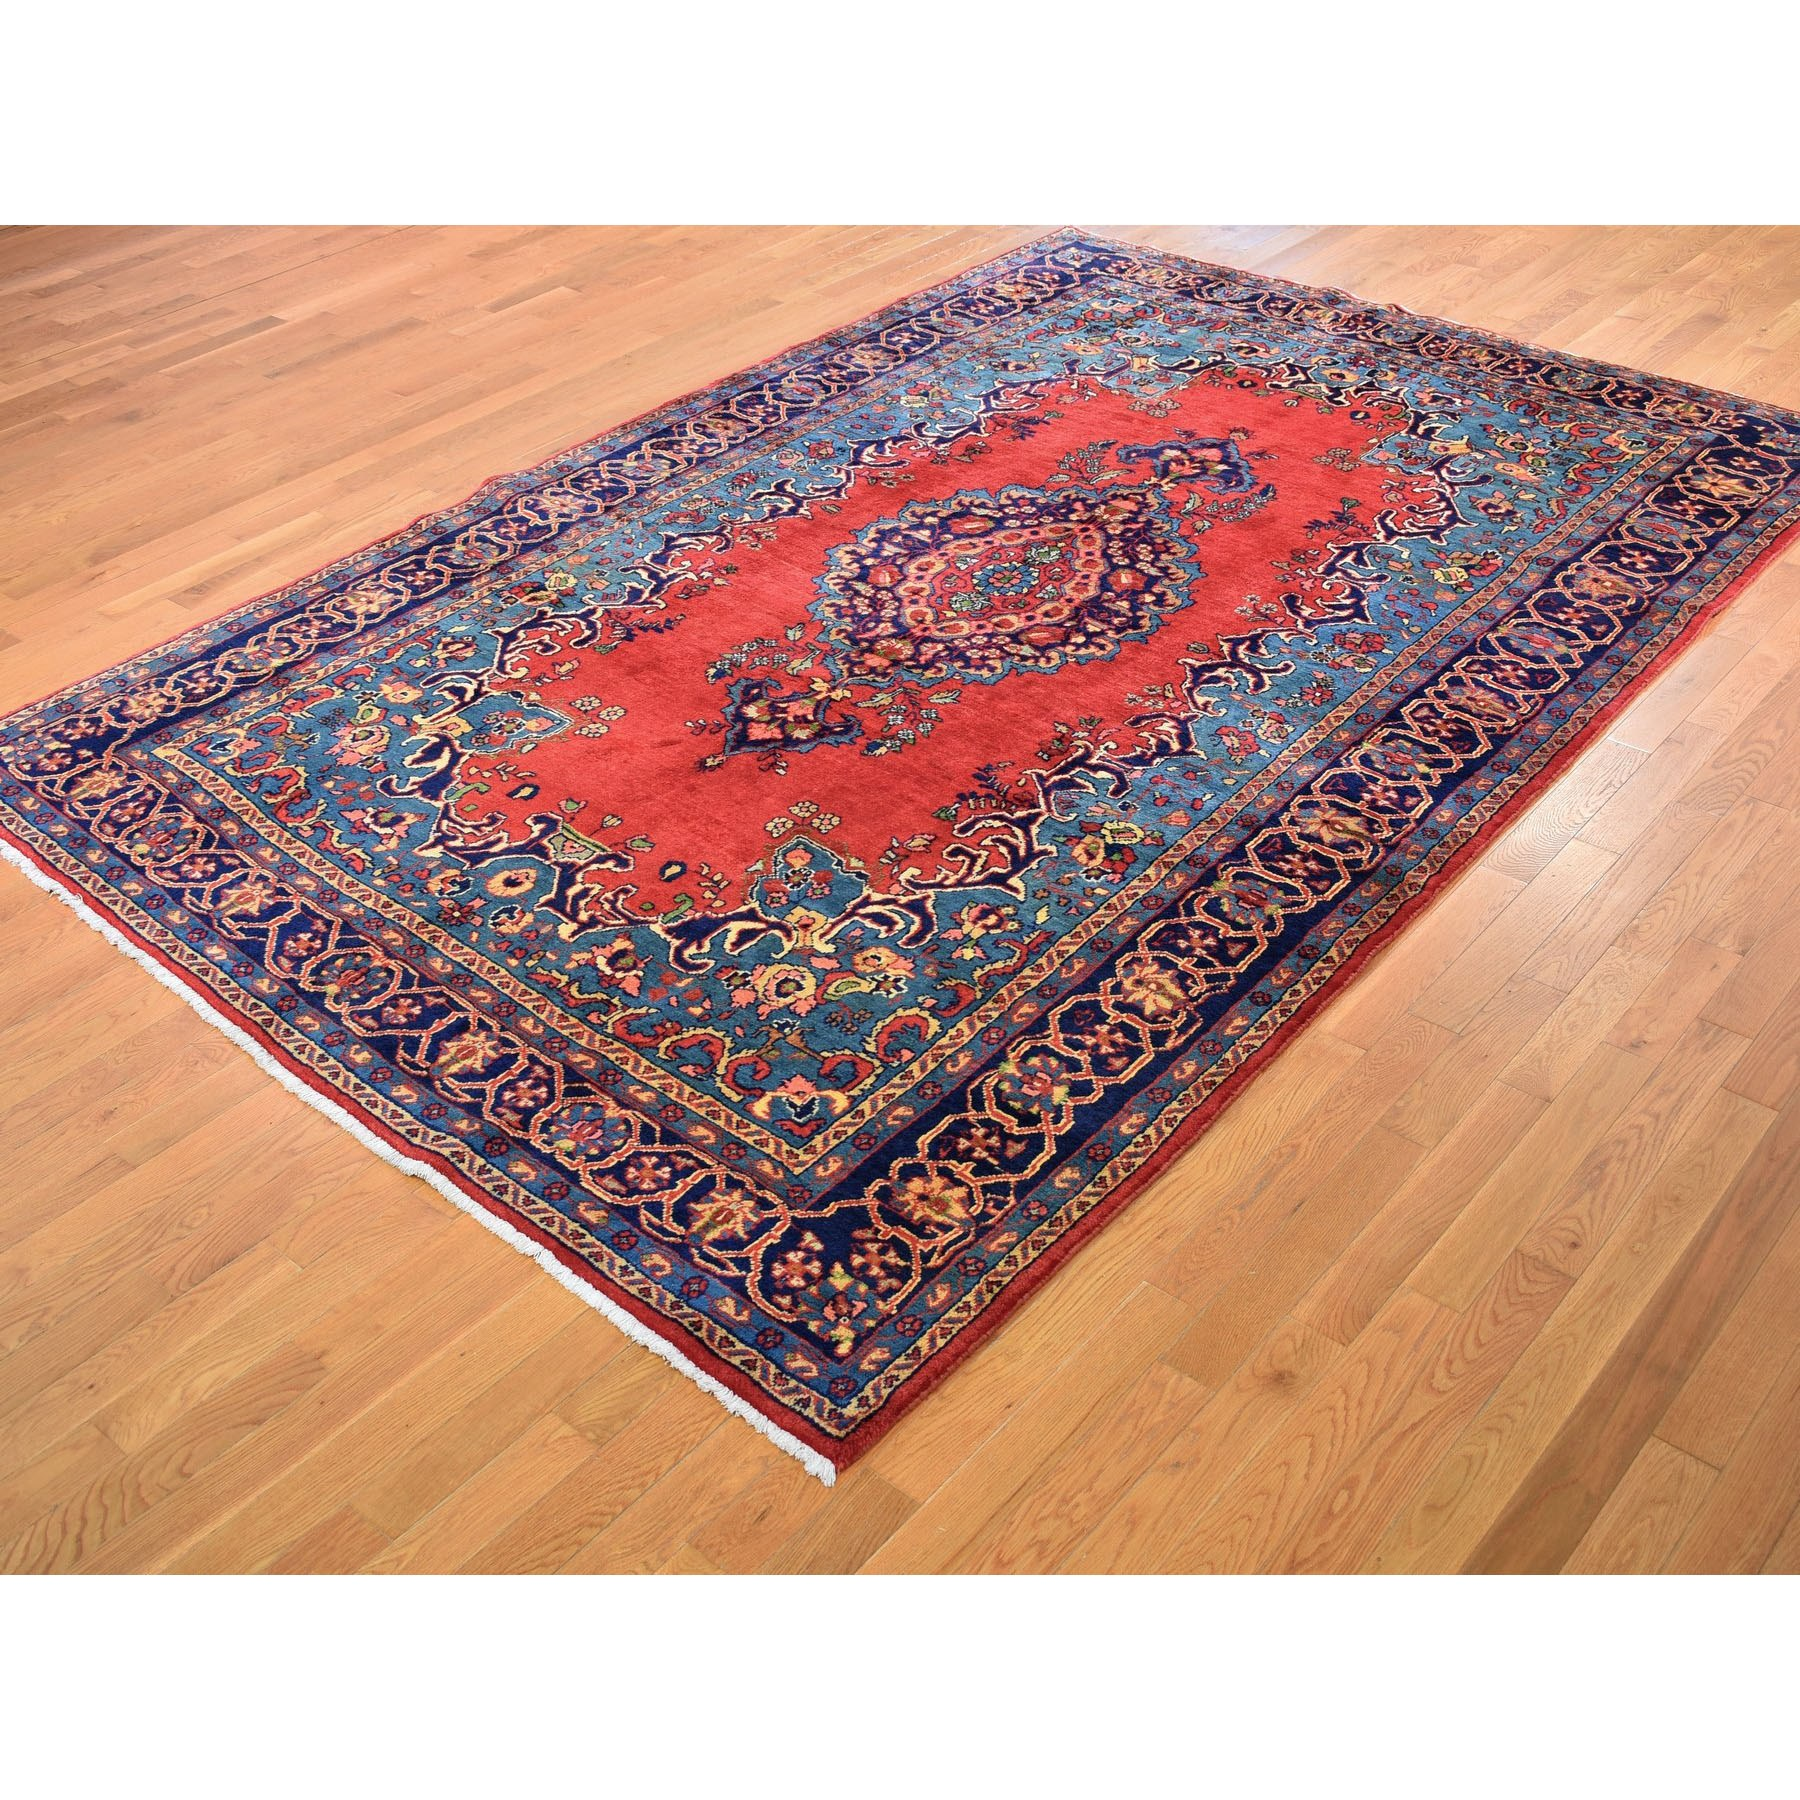 8-6 x12- Red Vintage Persian Viss Full Pile Pure Wool Hand Knotted Oriental Rug